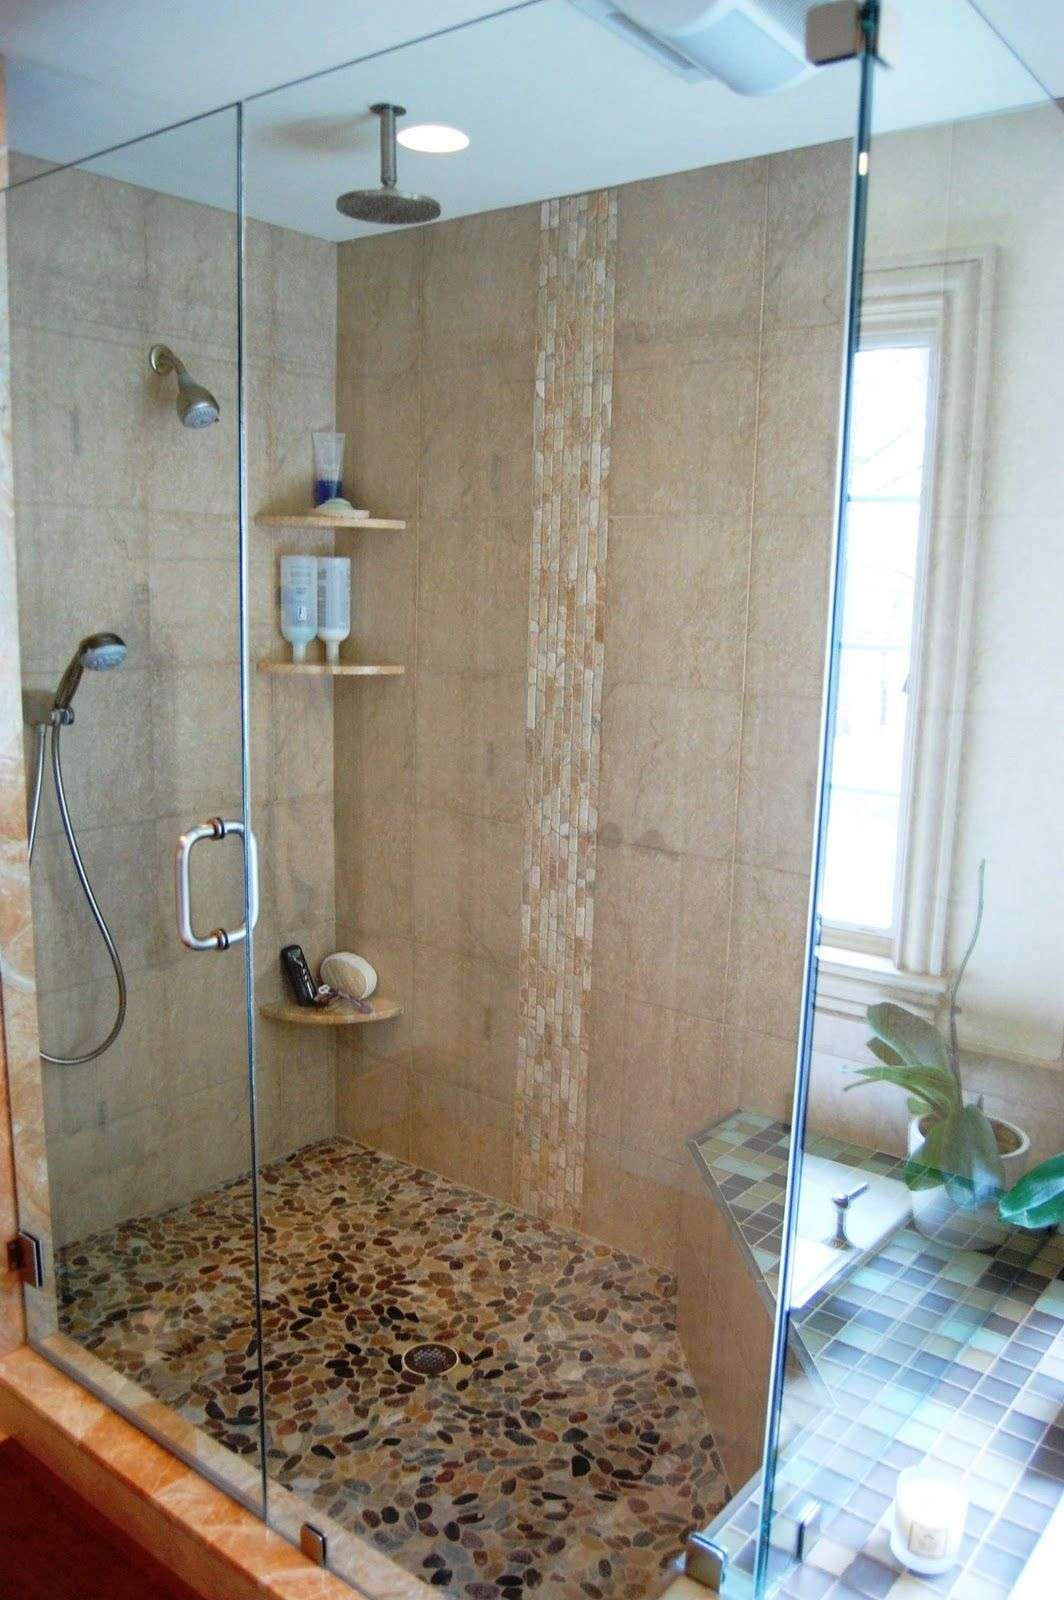 bathroom shower ideas waterfall bedroom ideas interior design. Interior Design Ideas. Home Design Ideas